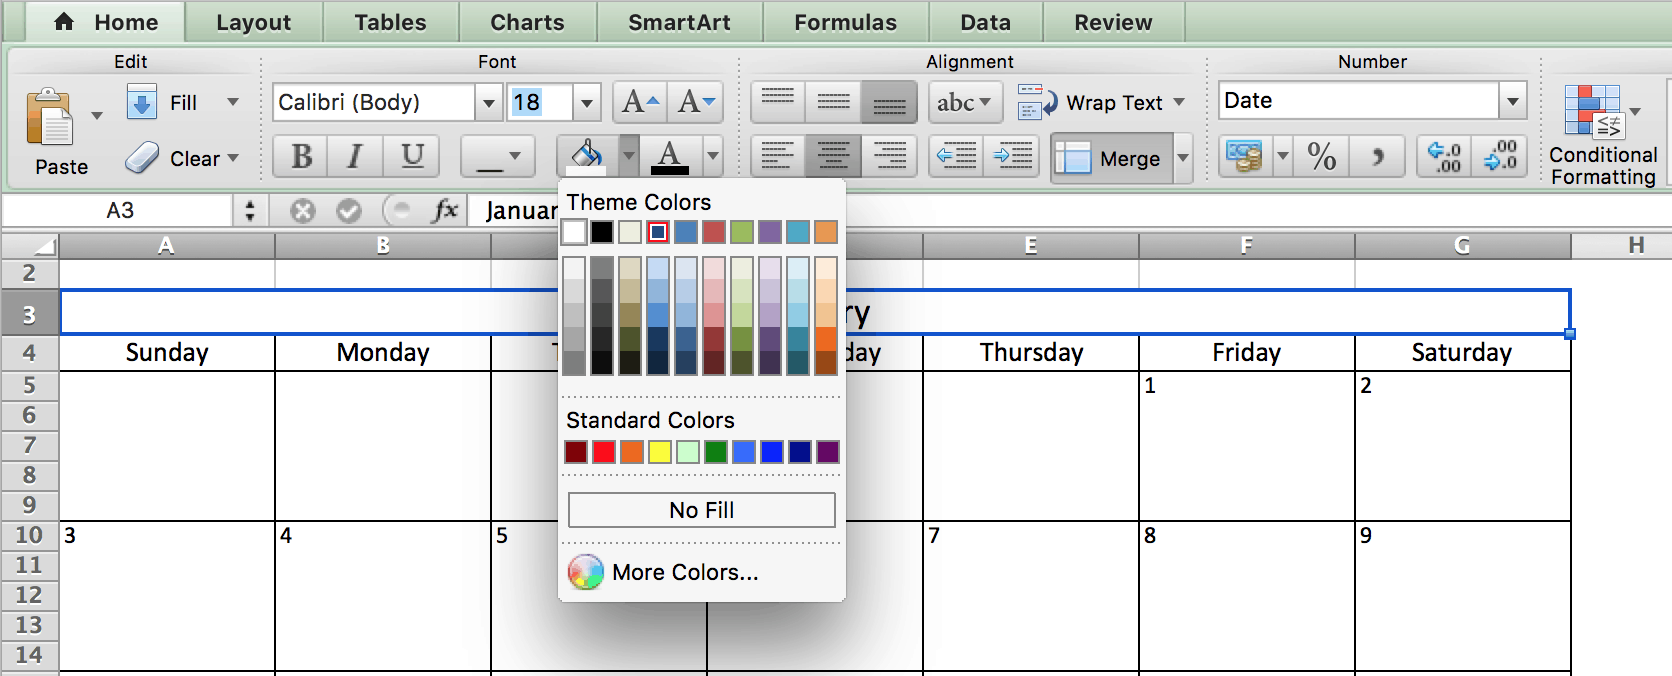 Ediblewildsus  Marvellous Make A  Calendar In Excel Includes Free Template With Foxy Choosing Colors  Calendar In Excel With Attractive Freezing A Row In Excel Also How To Replace Text In Excel In Addition Calculate Percent Difference In Excel And Image To Excel As Well As Excel Pivot Table Count Additionally Download Excel Templates From Smartsheetcom With Ediblewildsus  Foxy Make A  Calendar In Excel Includes Free Template With Attractive Choosing Colors  Calendar In Excel And Marvellous Freezing A Row In Excel Also How To Replace Text In Excel In Addition Calculate Percent Difference In Excel From Smartsheetcom